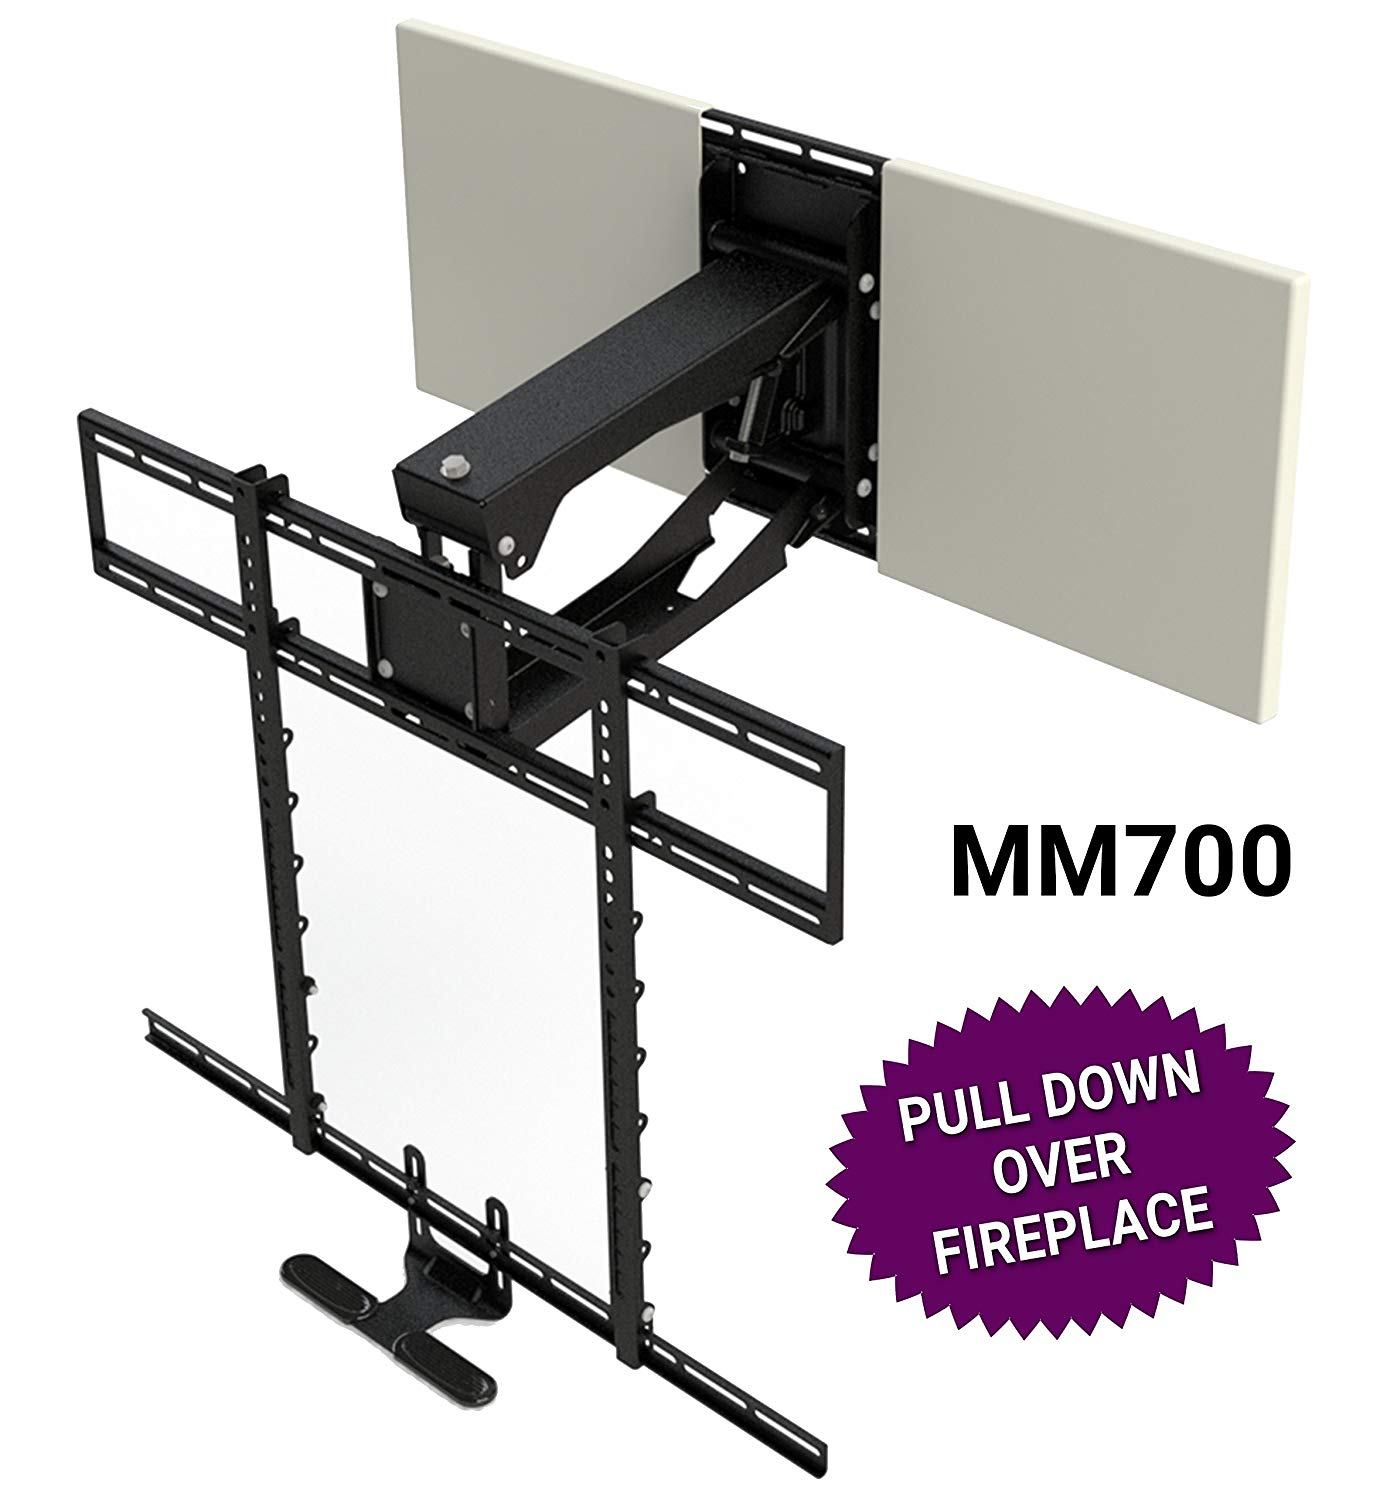 Mantelmount mm700 pro series above fireplace pull down tv - Pull down tv mount over fireplace ...